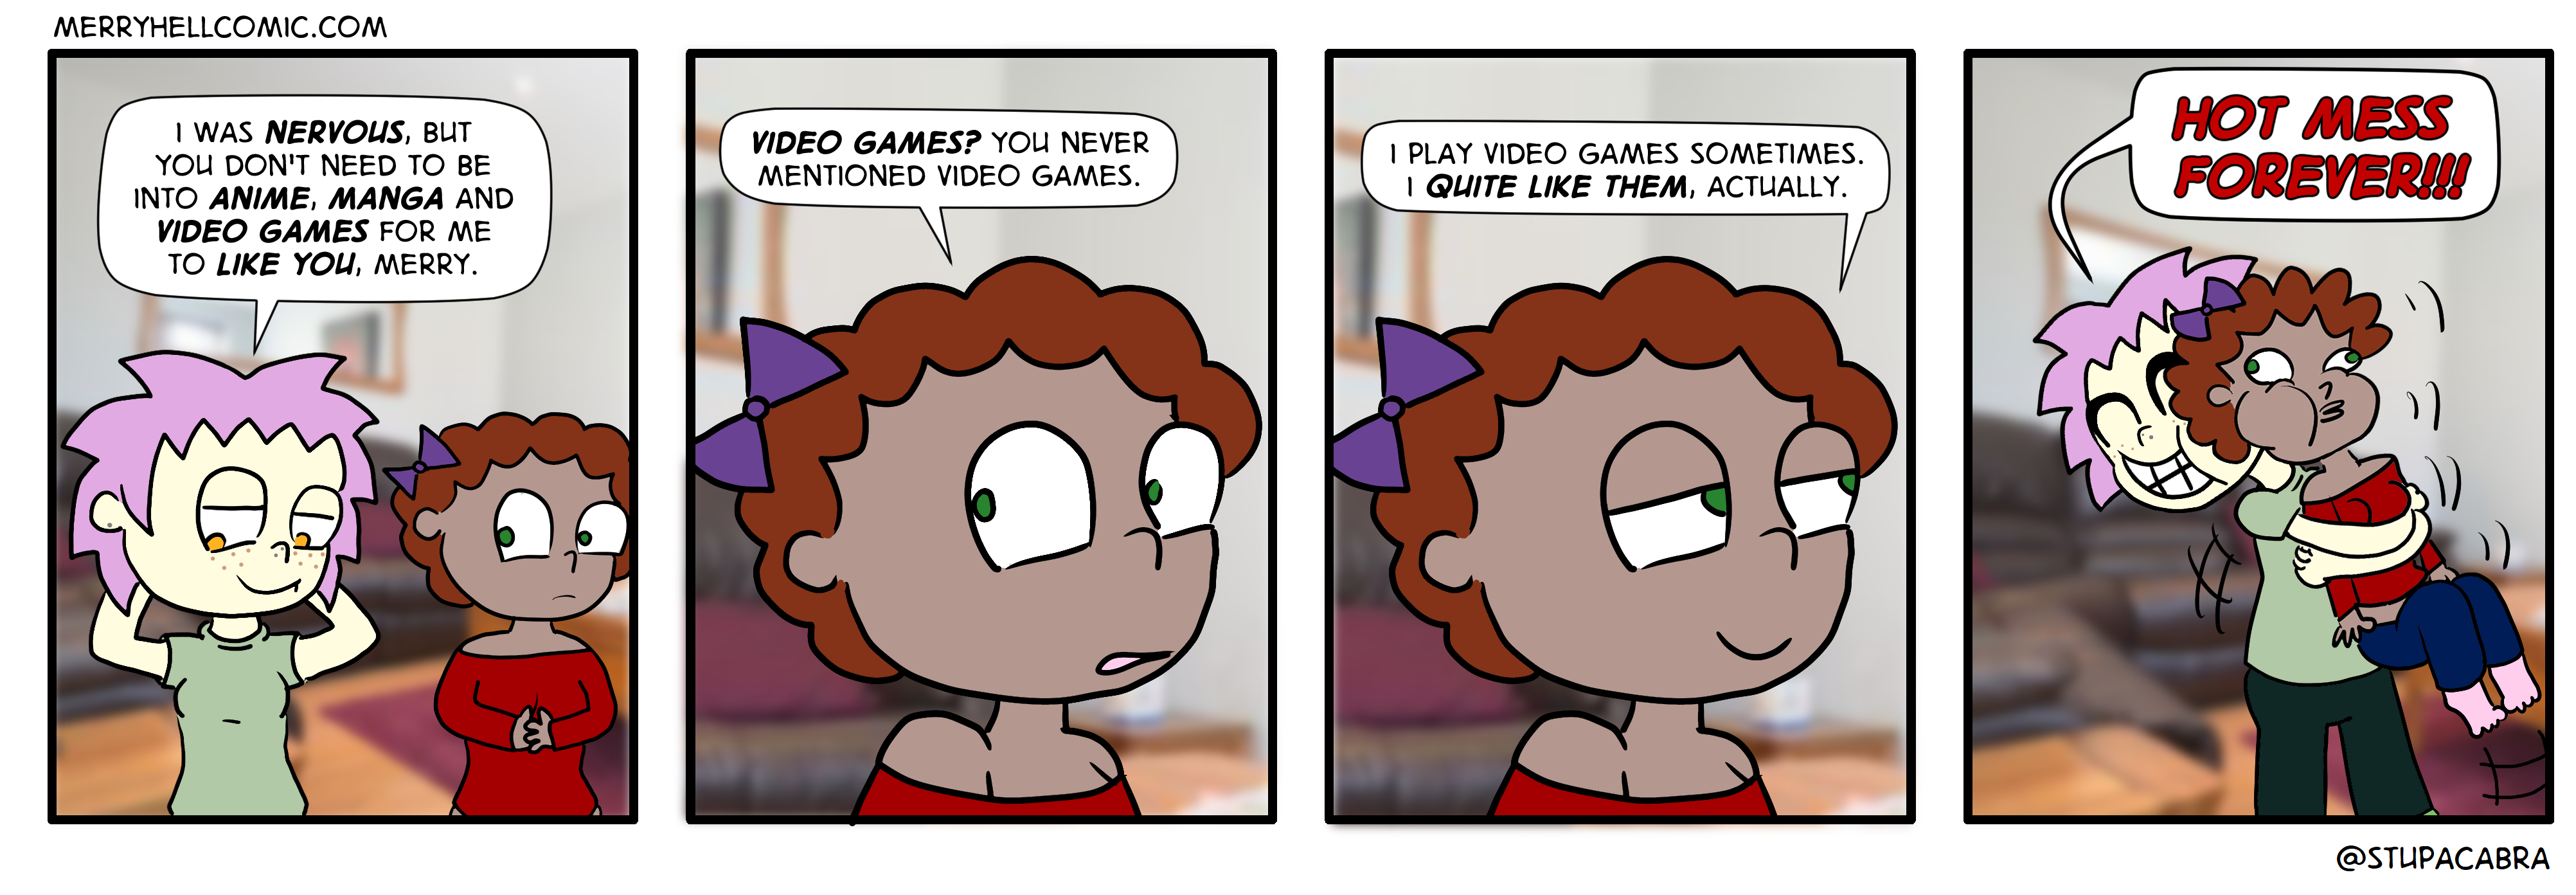 425. Video games